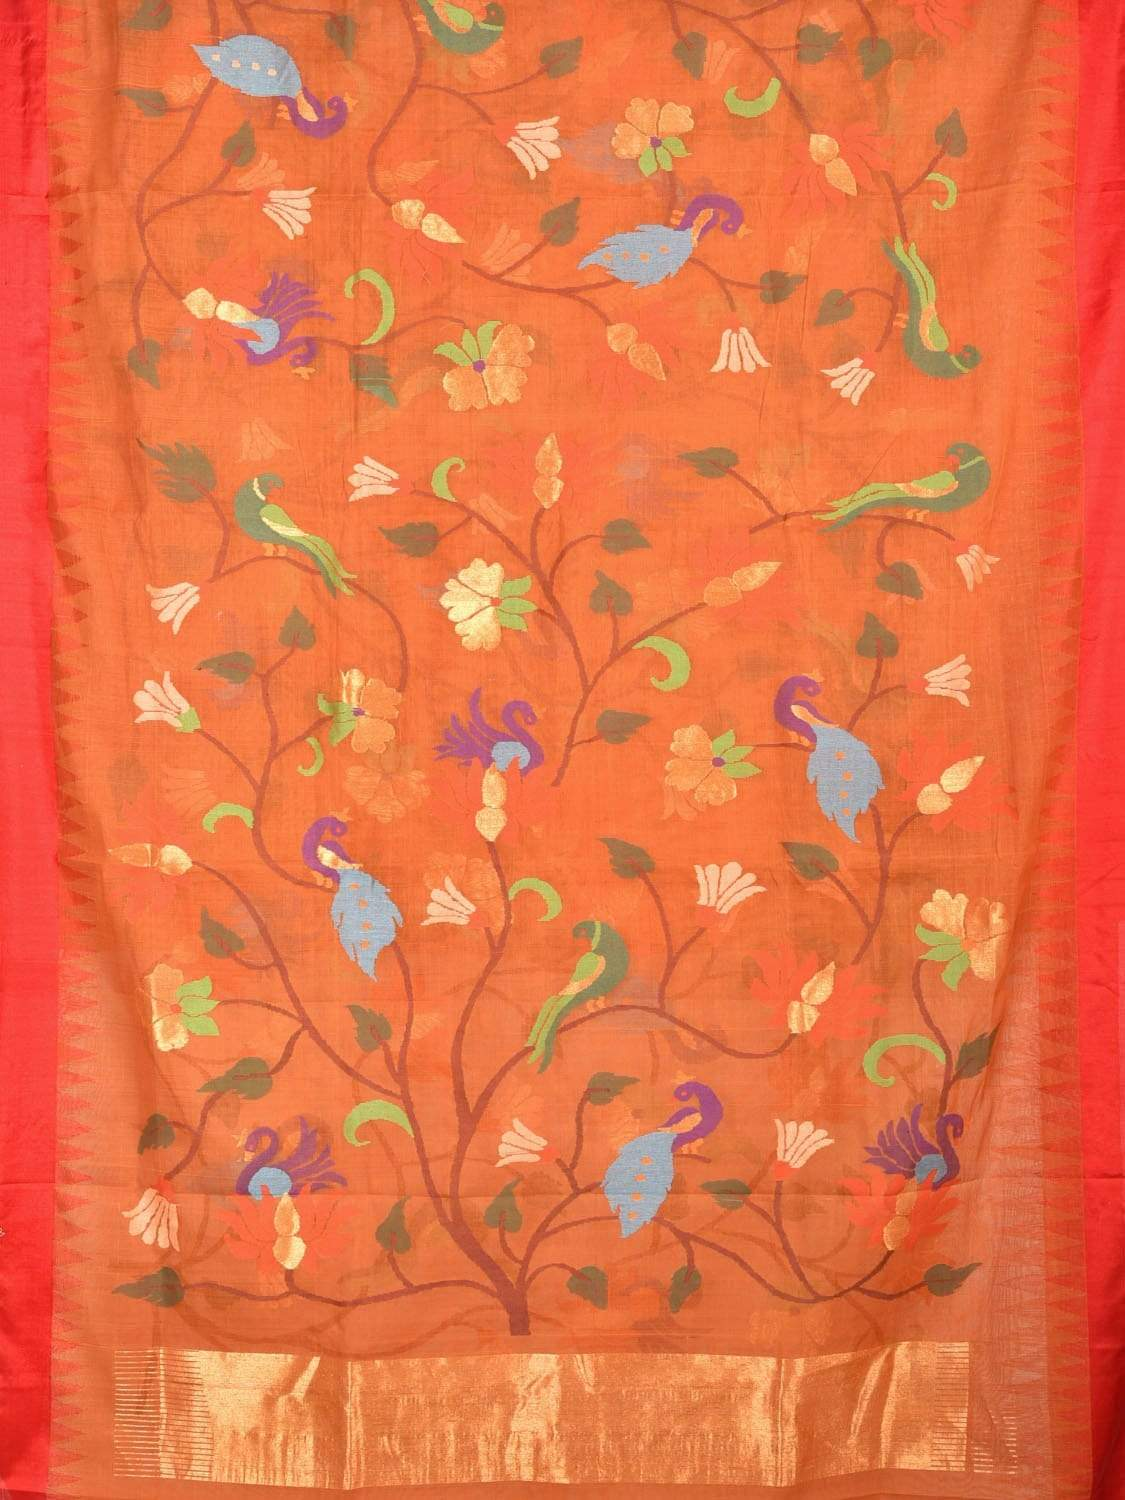 Orange Khadi Cotton Handloom Saree with All Over Parrot and Peacock Design kh0465